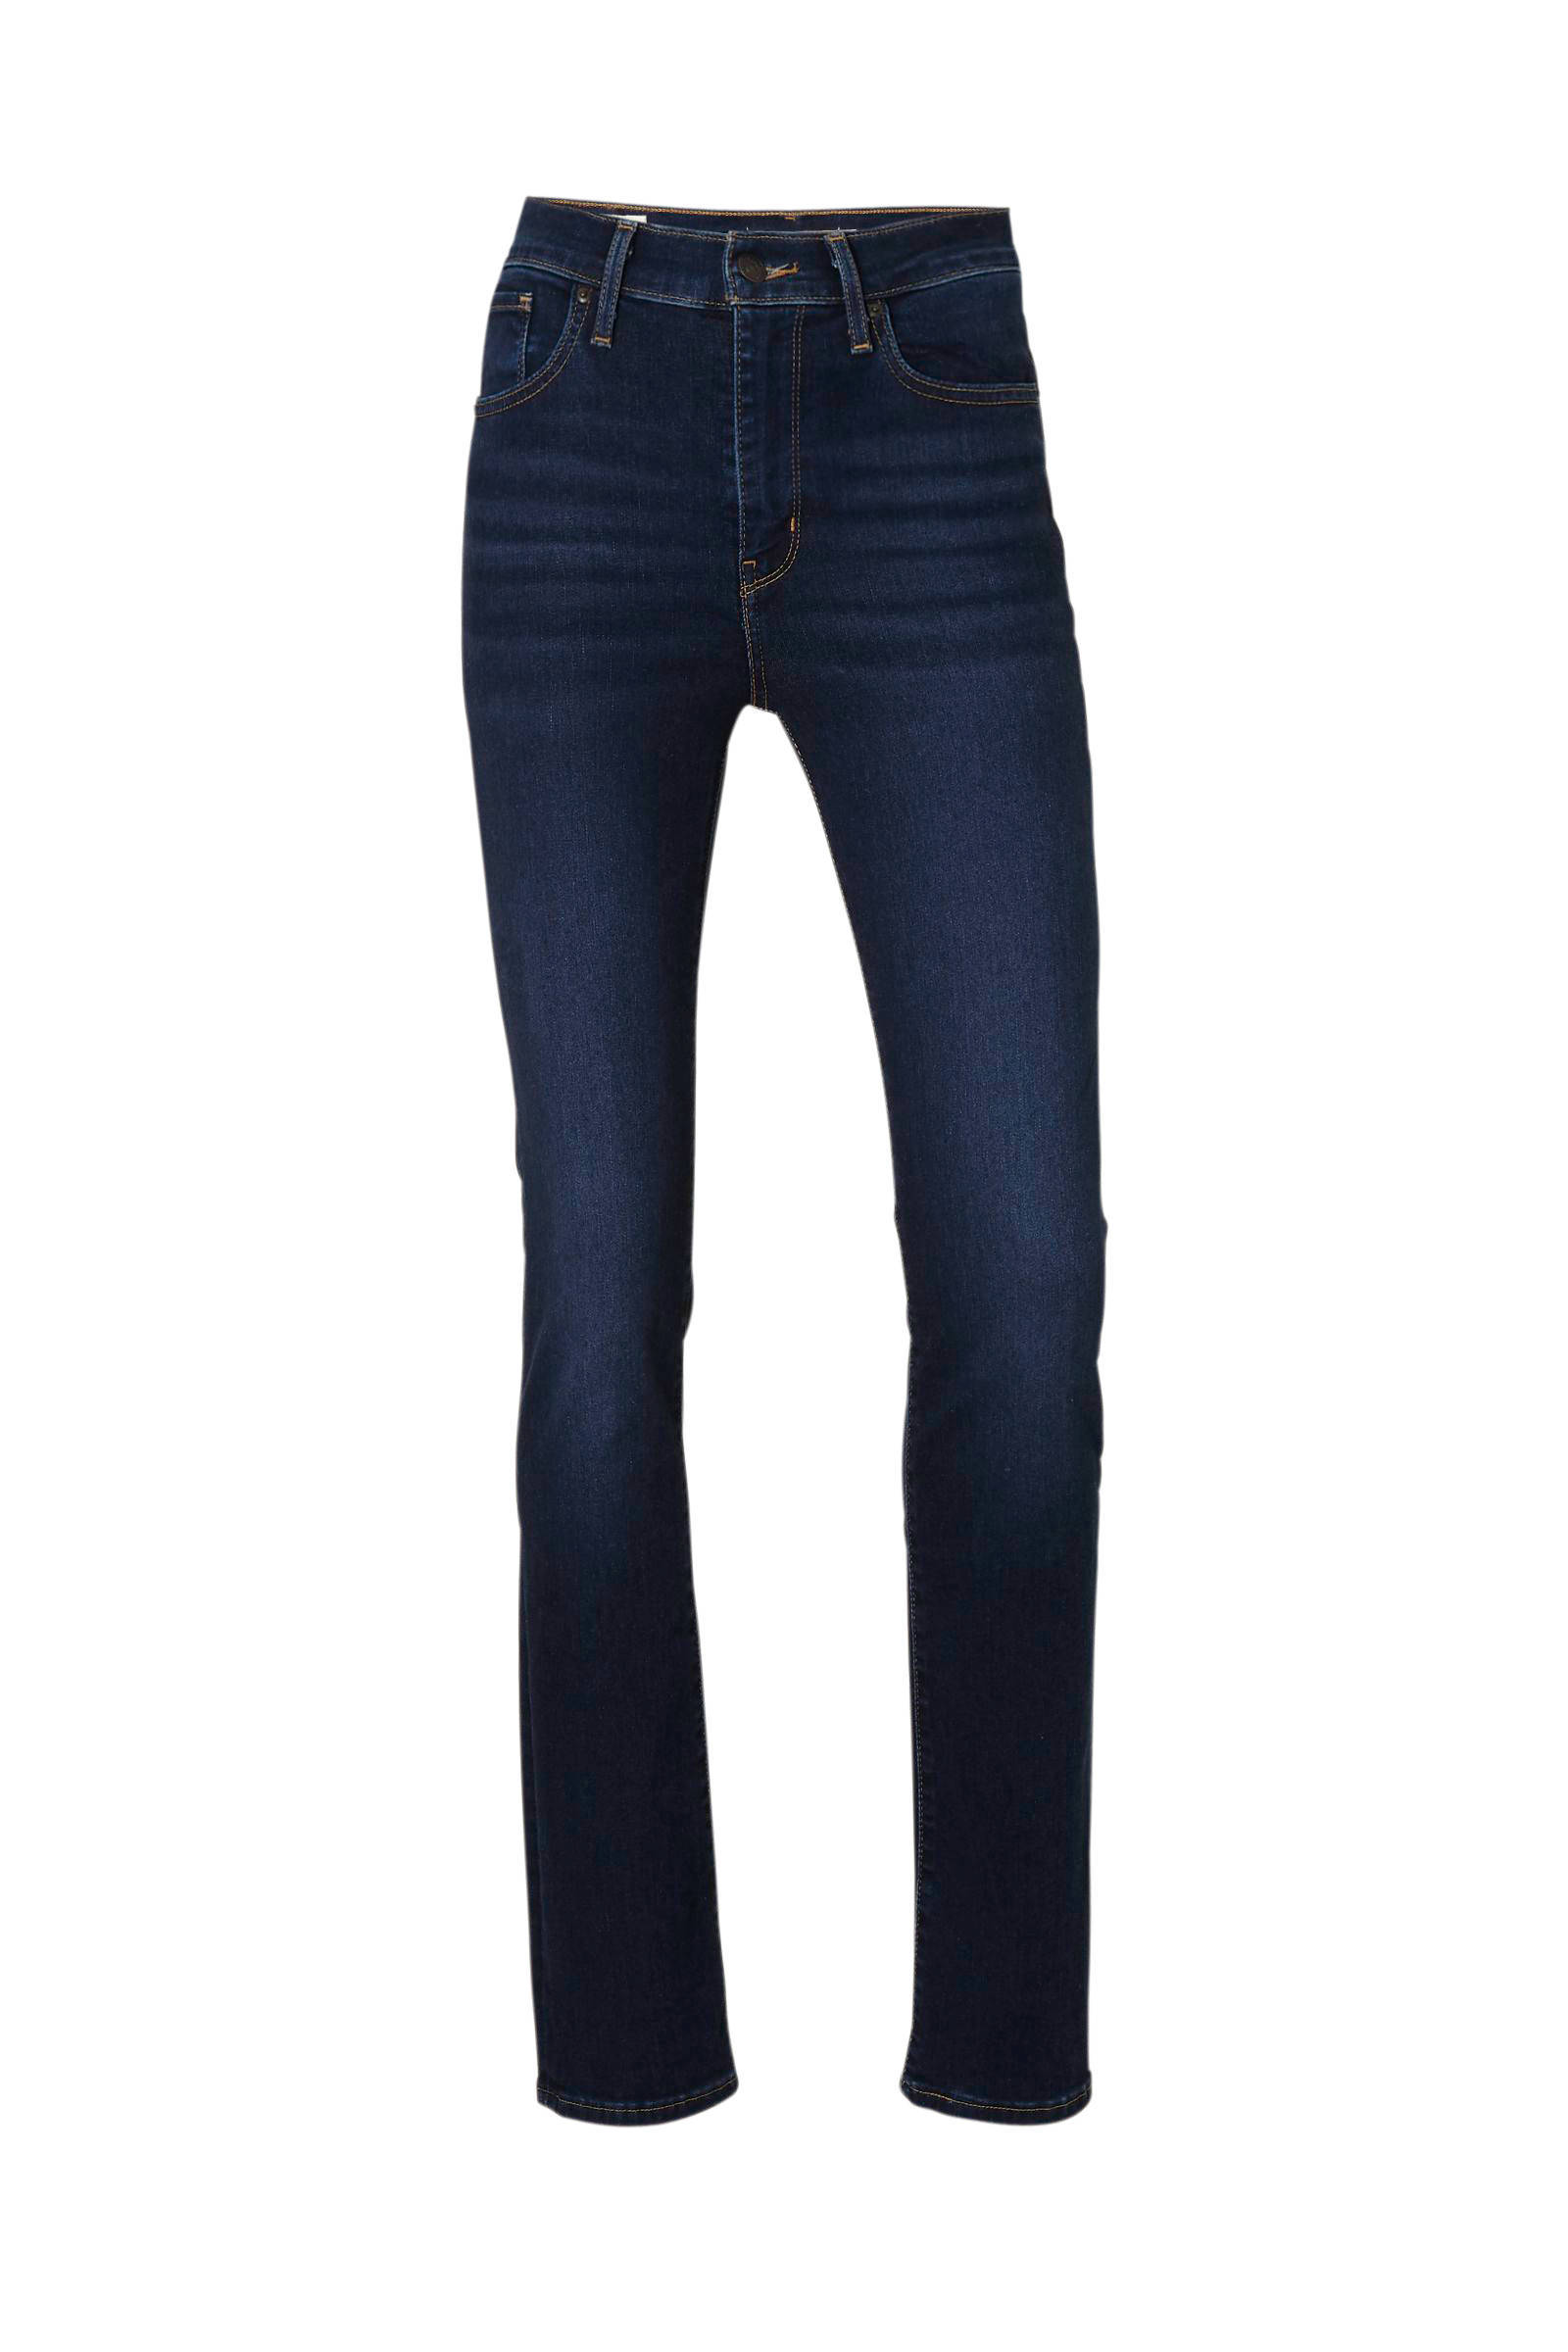 Levi's 724 high rise straight jeans (dames)